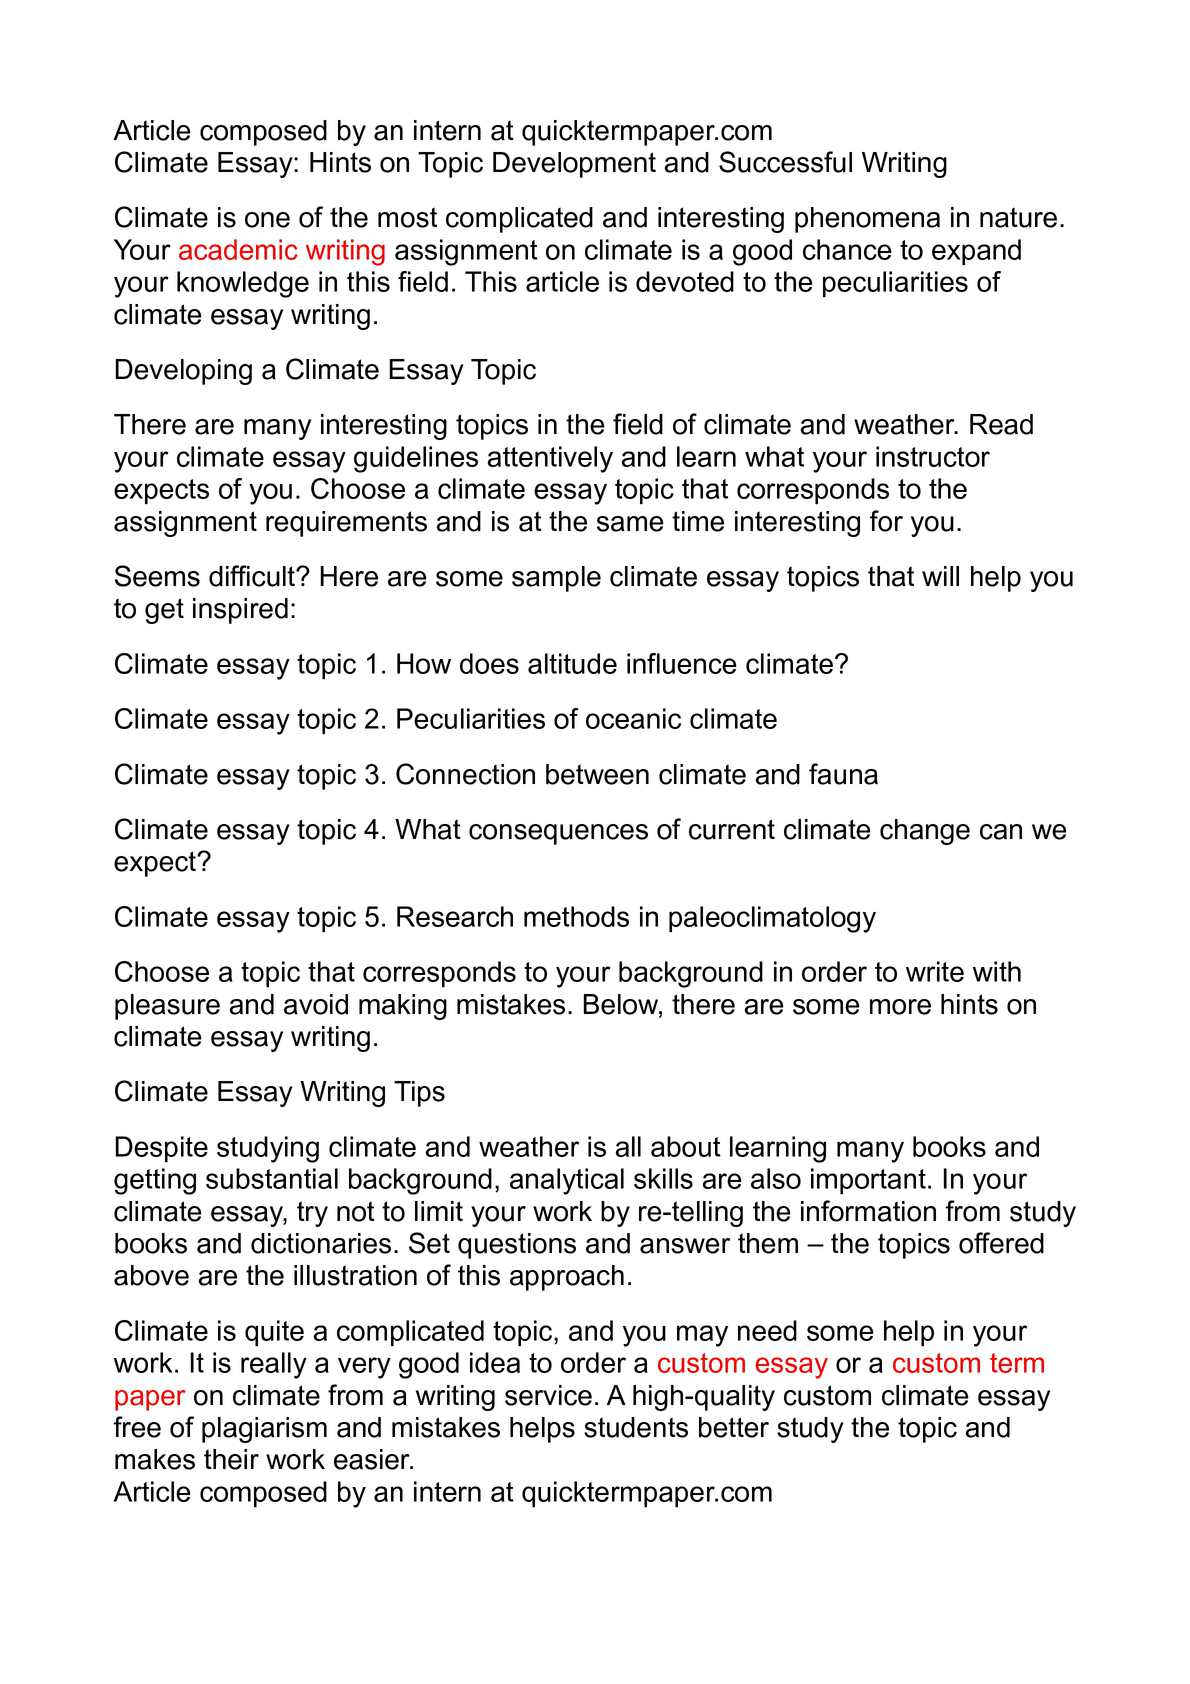 005 Essay About Learning From Mistakes P1 Fascinating My Your Full